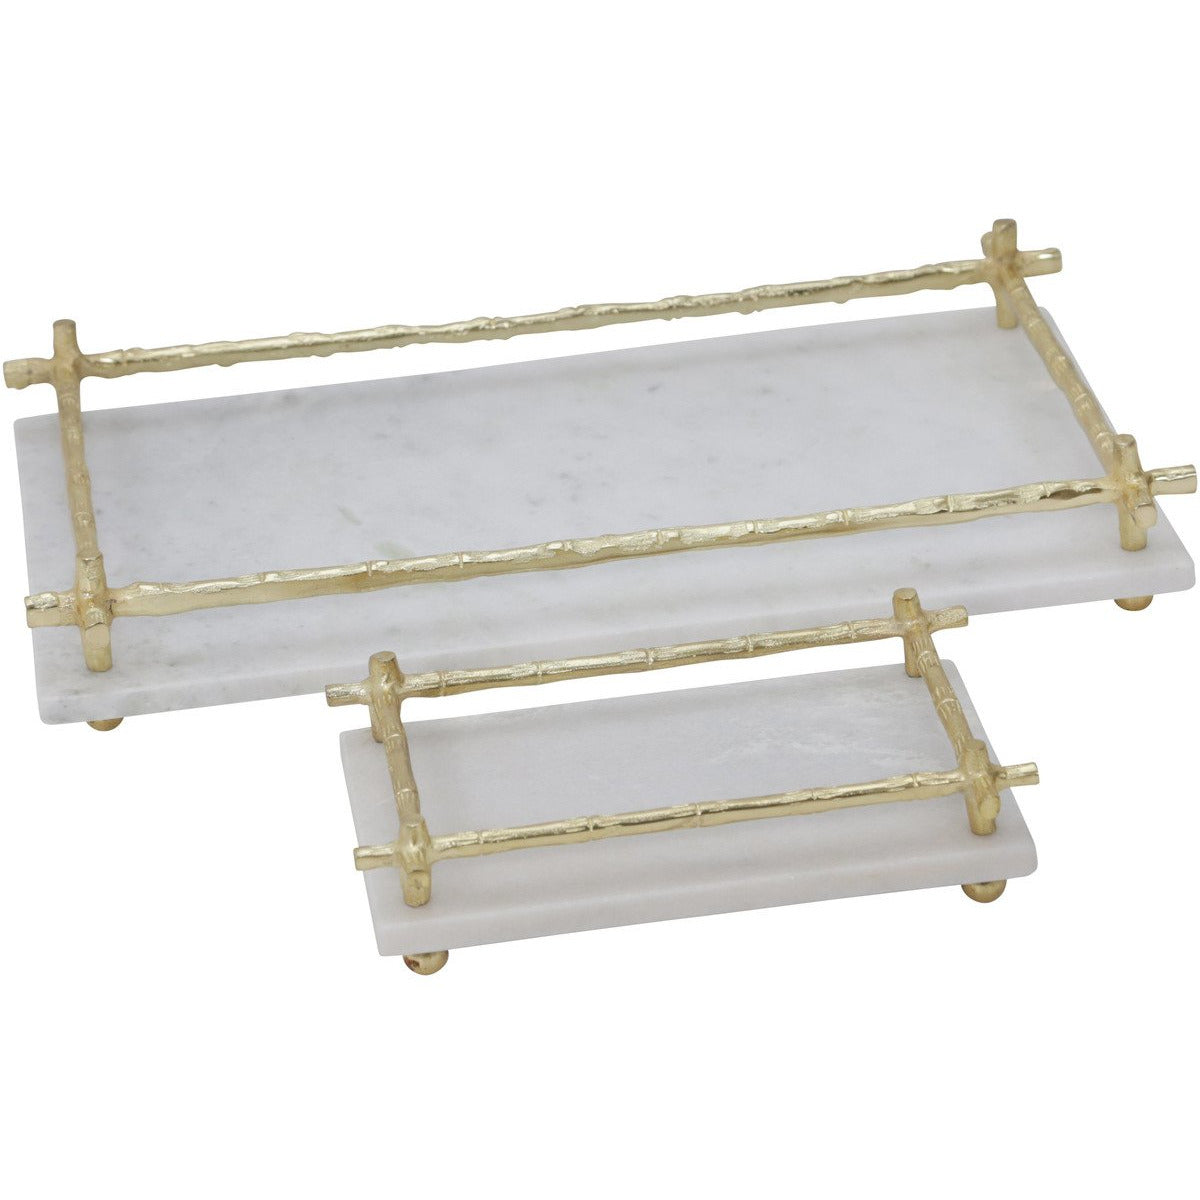 Serving Trays - Rectangular Marble Tray With And Metal Handle, Set Of 2,White And Gold